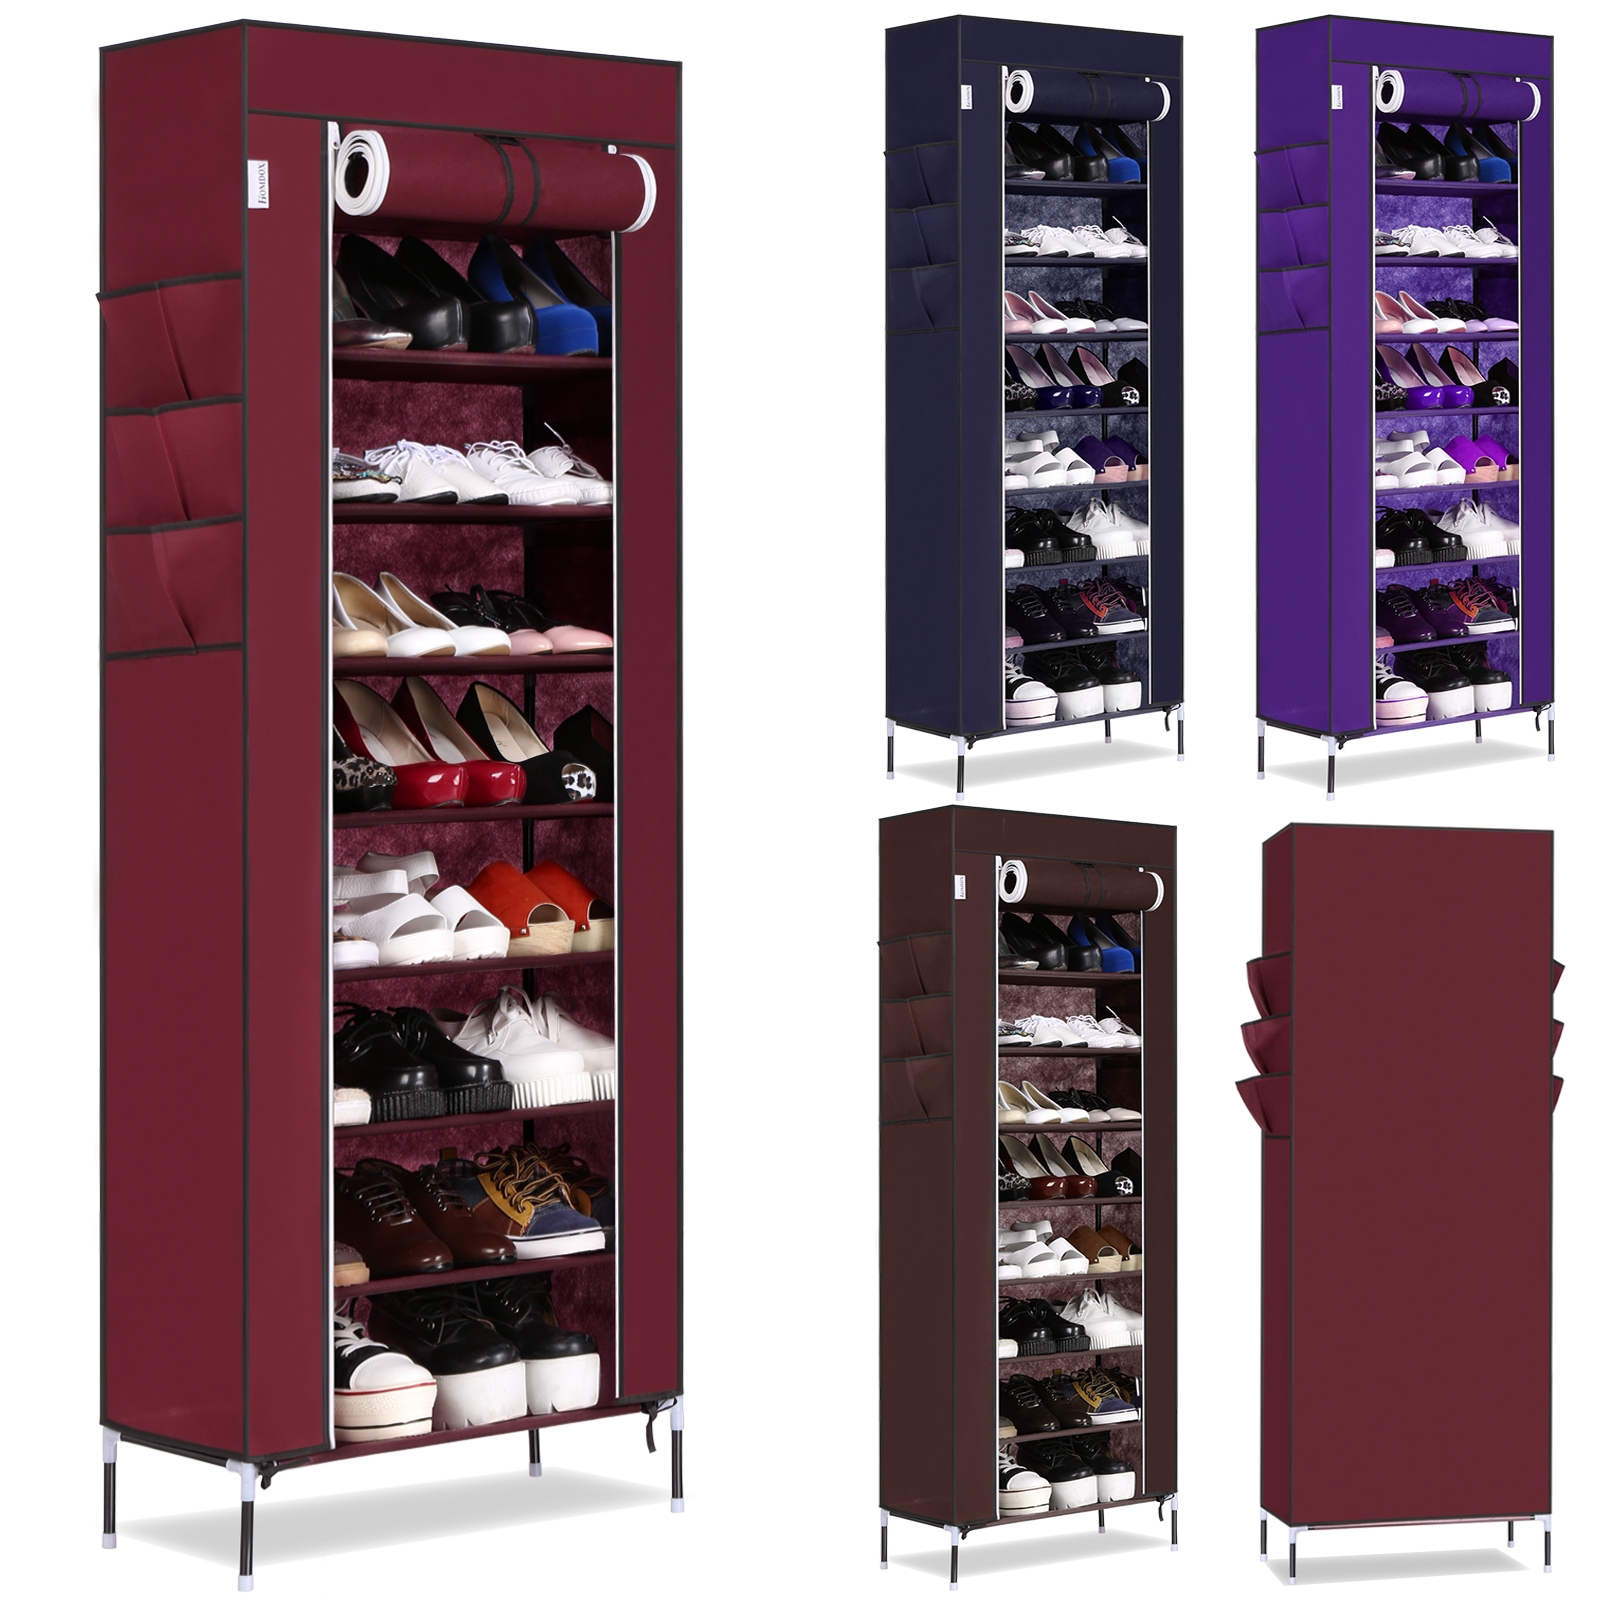 Portable Shoe Rack 10 Layer 9 Grid Shoe Cabinet Organizers  with side pockets